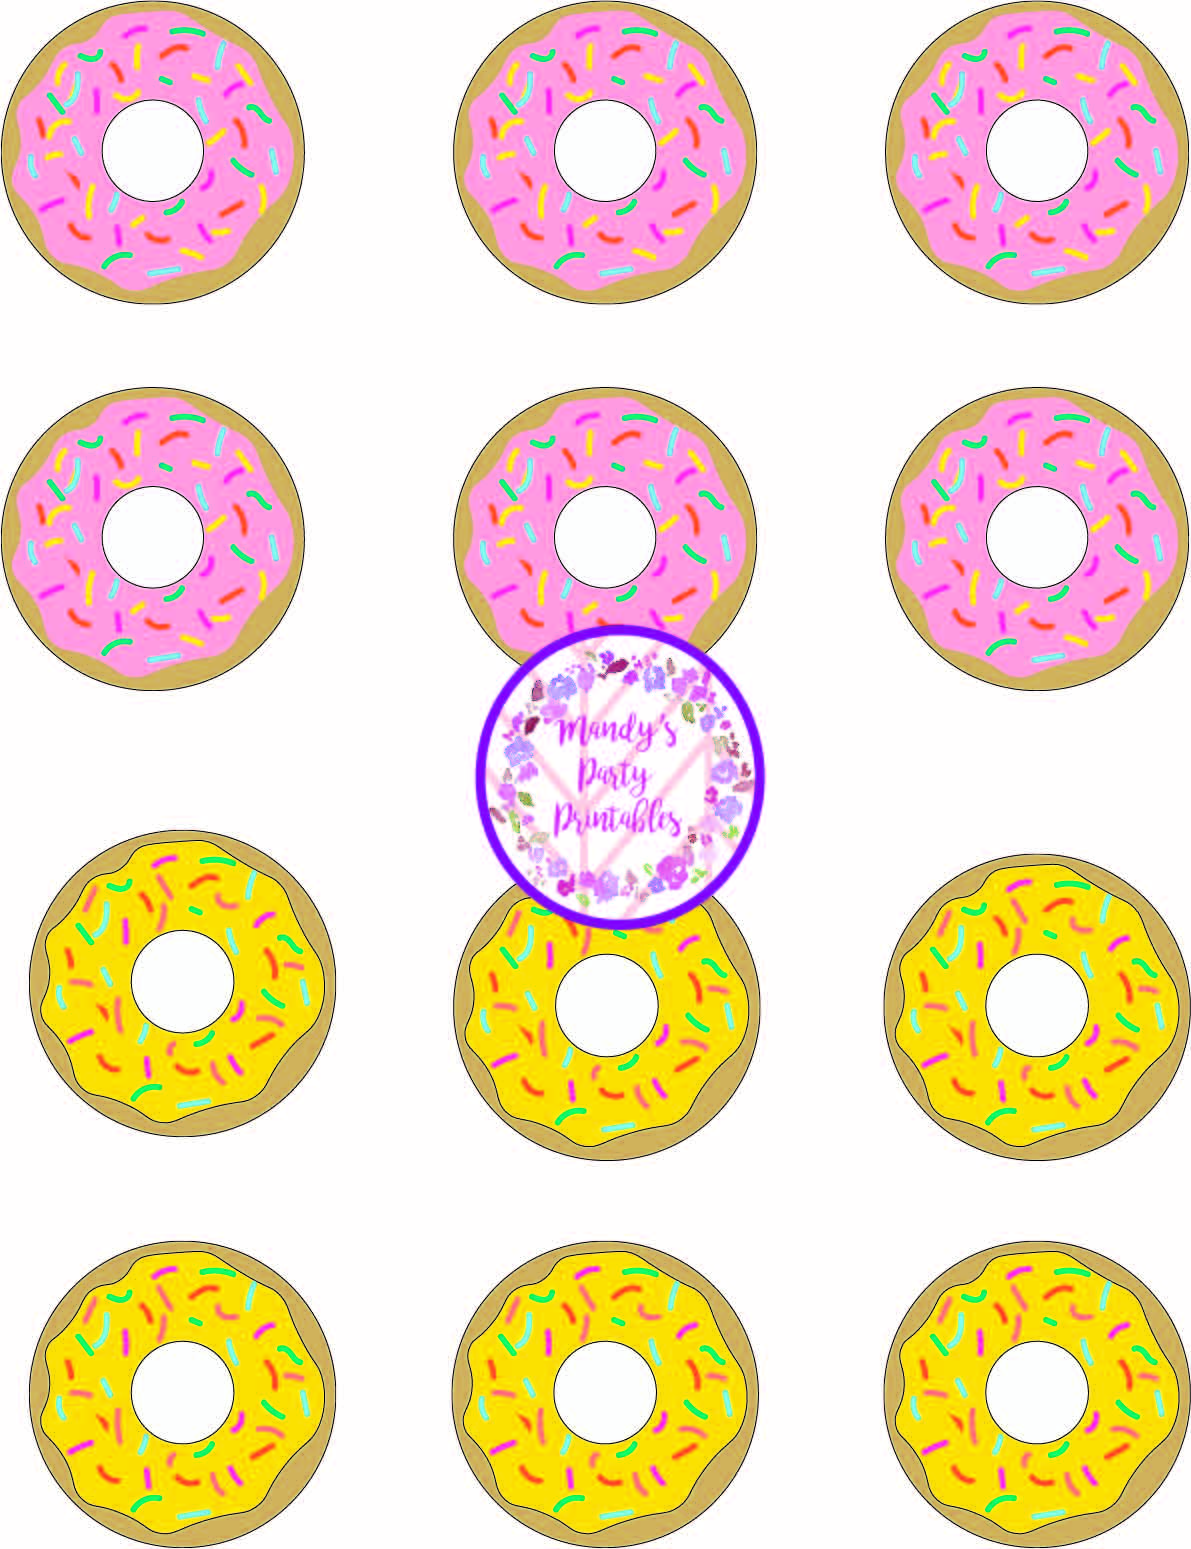 image about Printable Tic Tac Toe identified as Donut Social gathering Activity Tic Tac Toe!